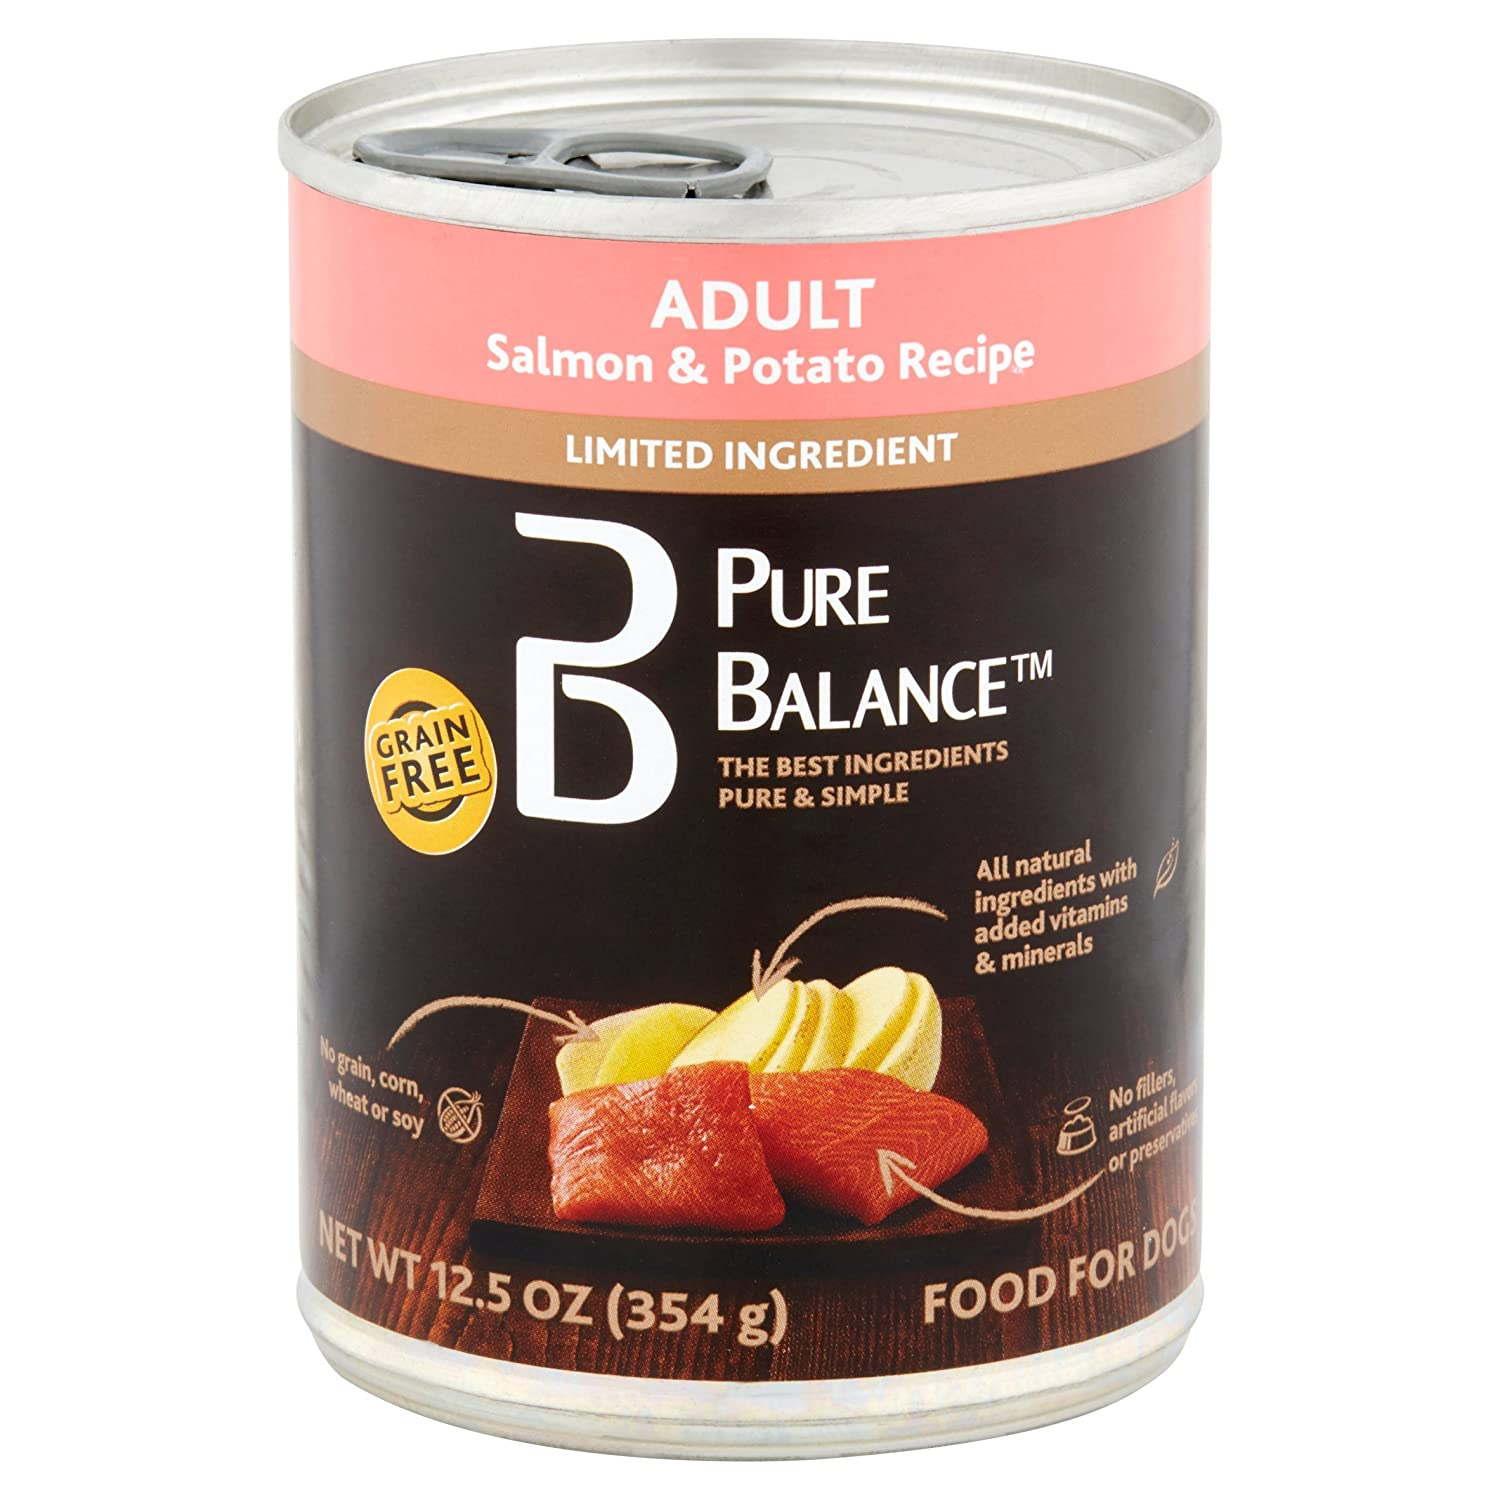 Pure Balance 95 Percent Wet Dog Food (12.5 Oz, Pack of 24) (Beef Vegetables & Brown Rice): Amazon.com: Grocery & Gourmet Food